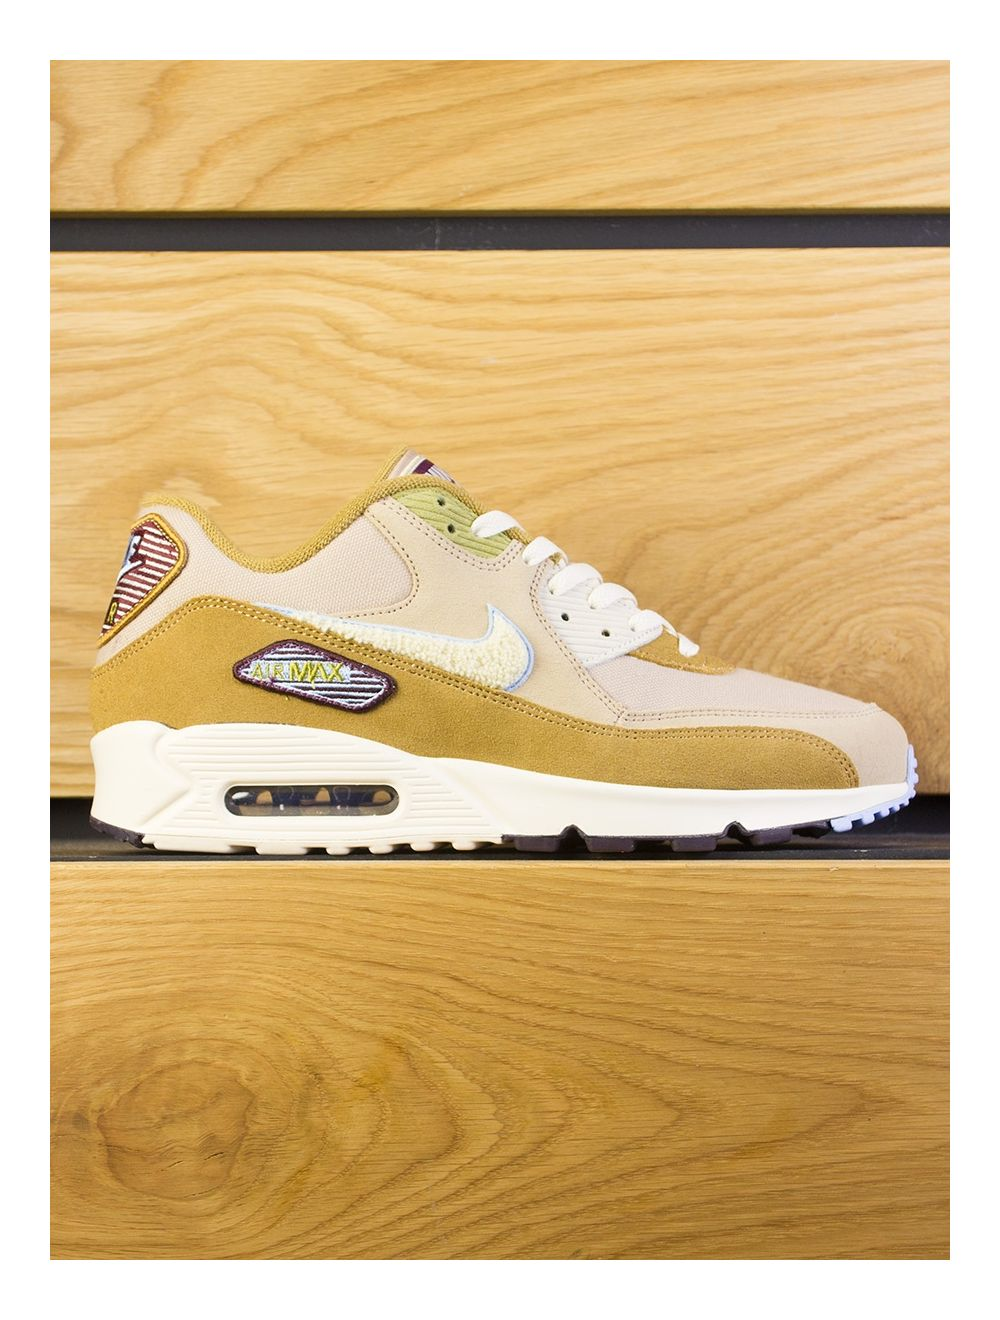 Nike Air Max 90 Premium SE Muted BronzeLight Cream